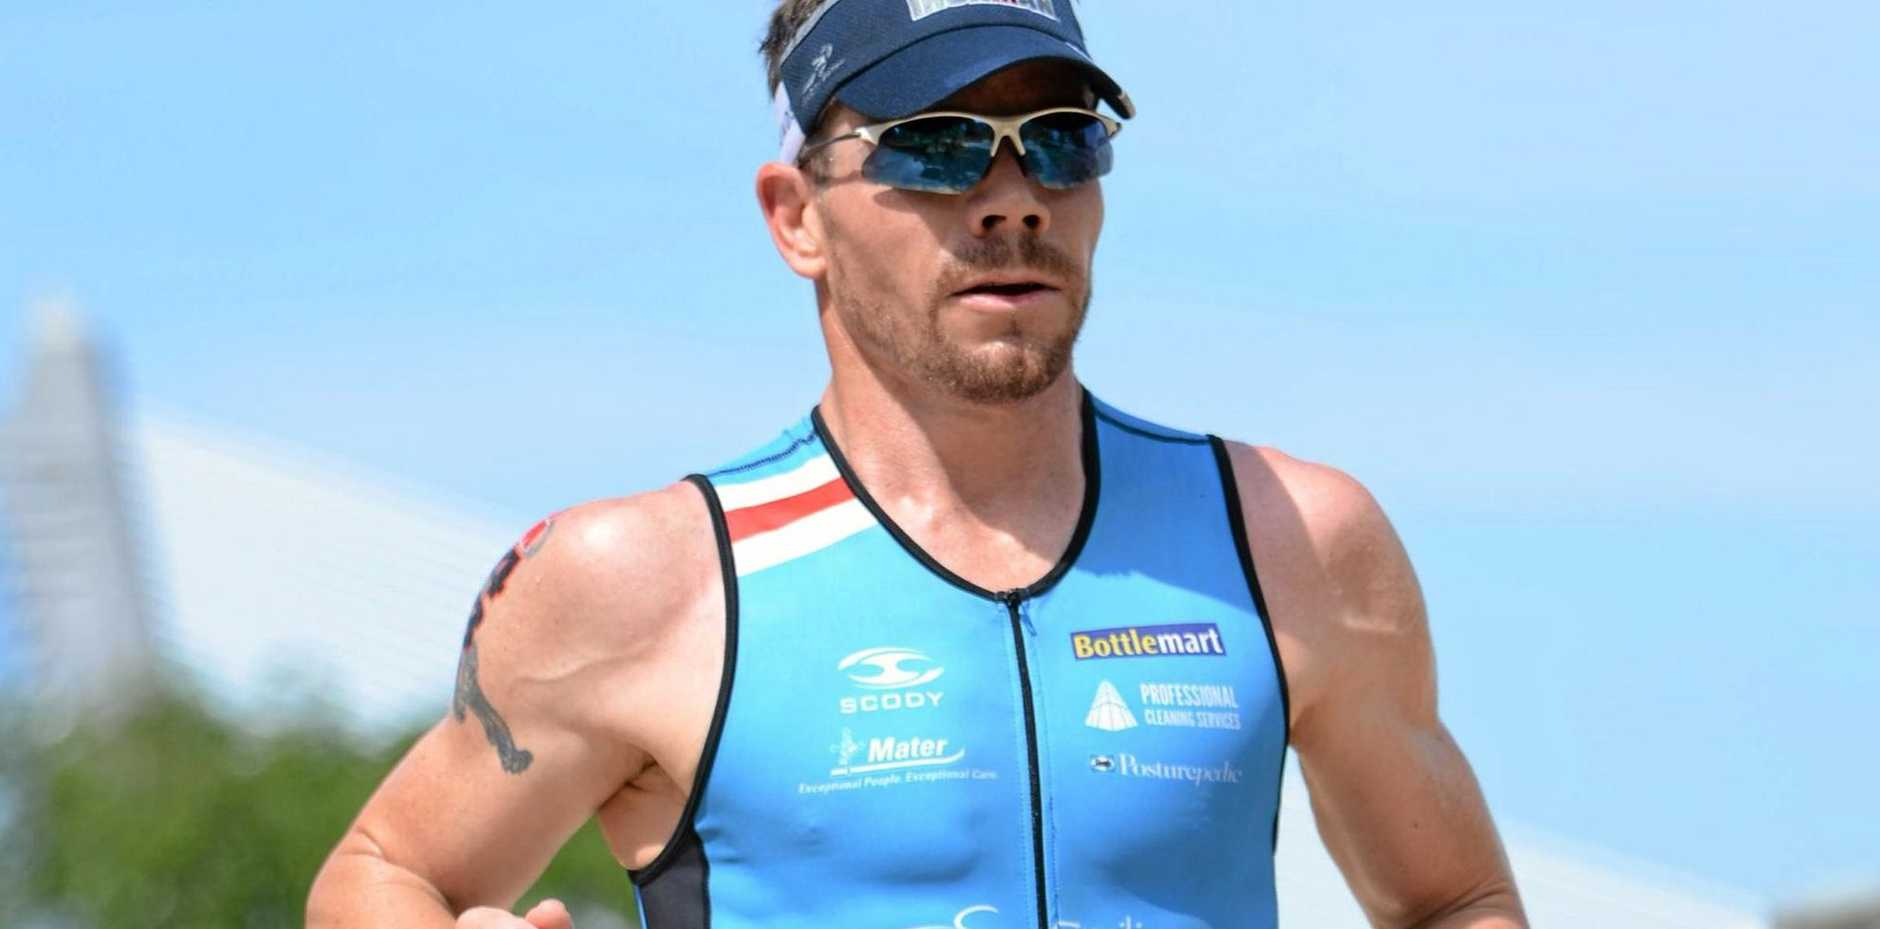 ULTRA COMPETITOR: Paul McDonald, 38, is one of the Coast's local hopes at this weekend's 70.3 IRONMAN World Championships.